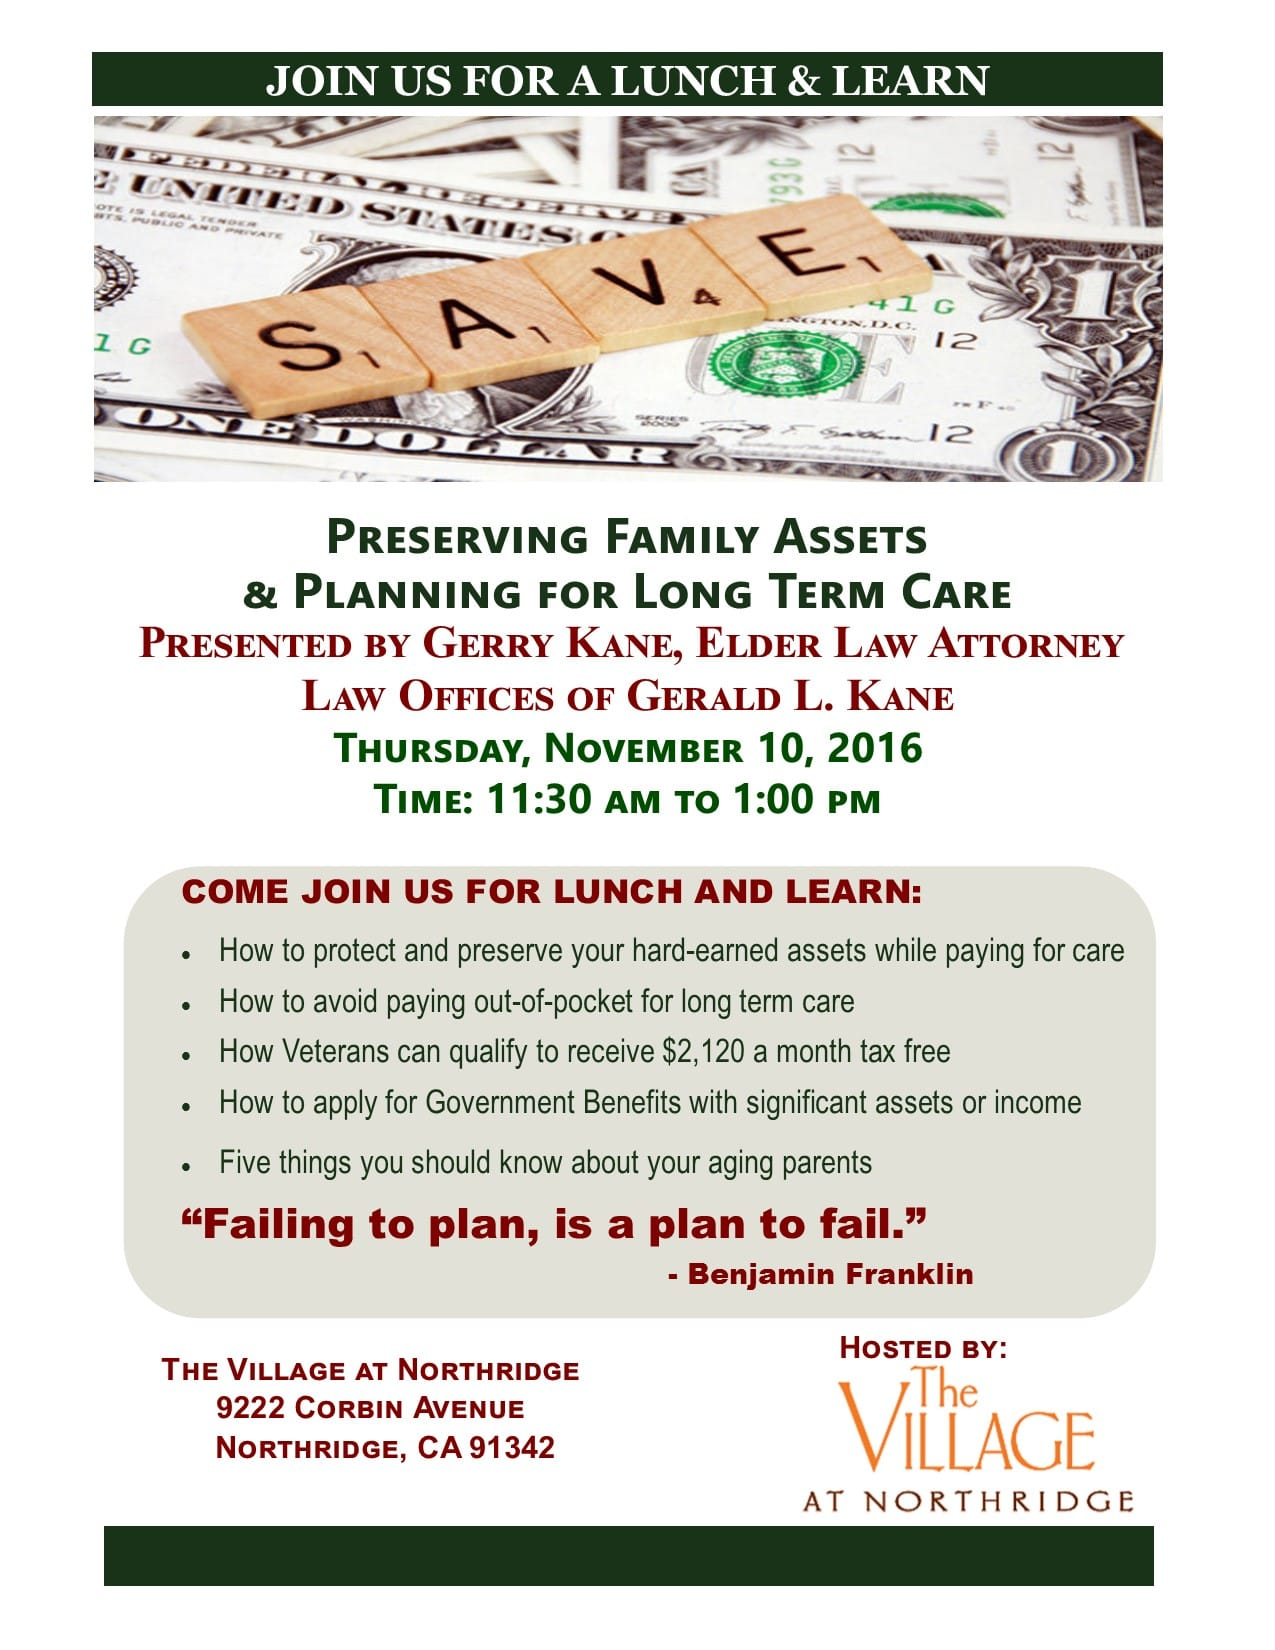 Village Northridge For Preserving family Assets & Planning For Long Term Care